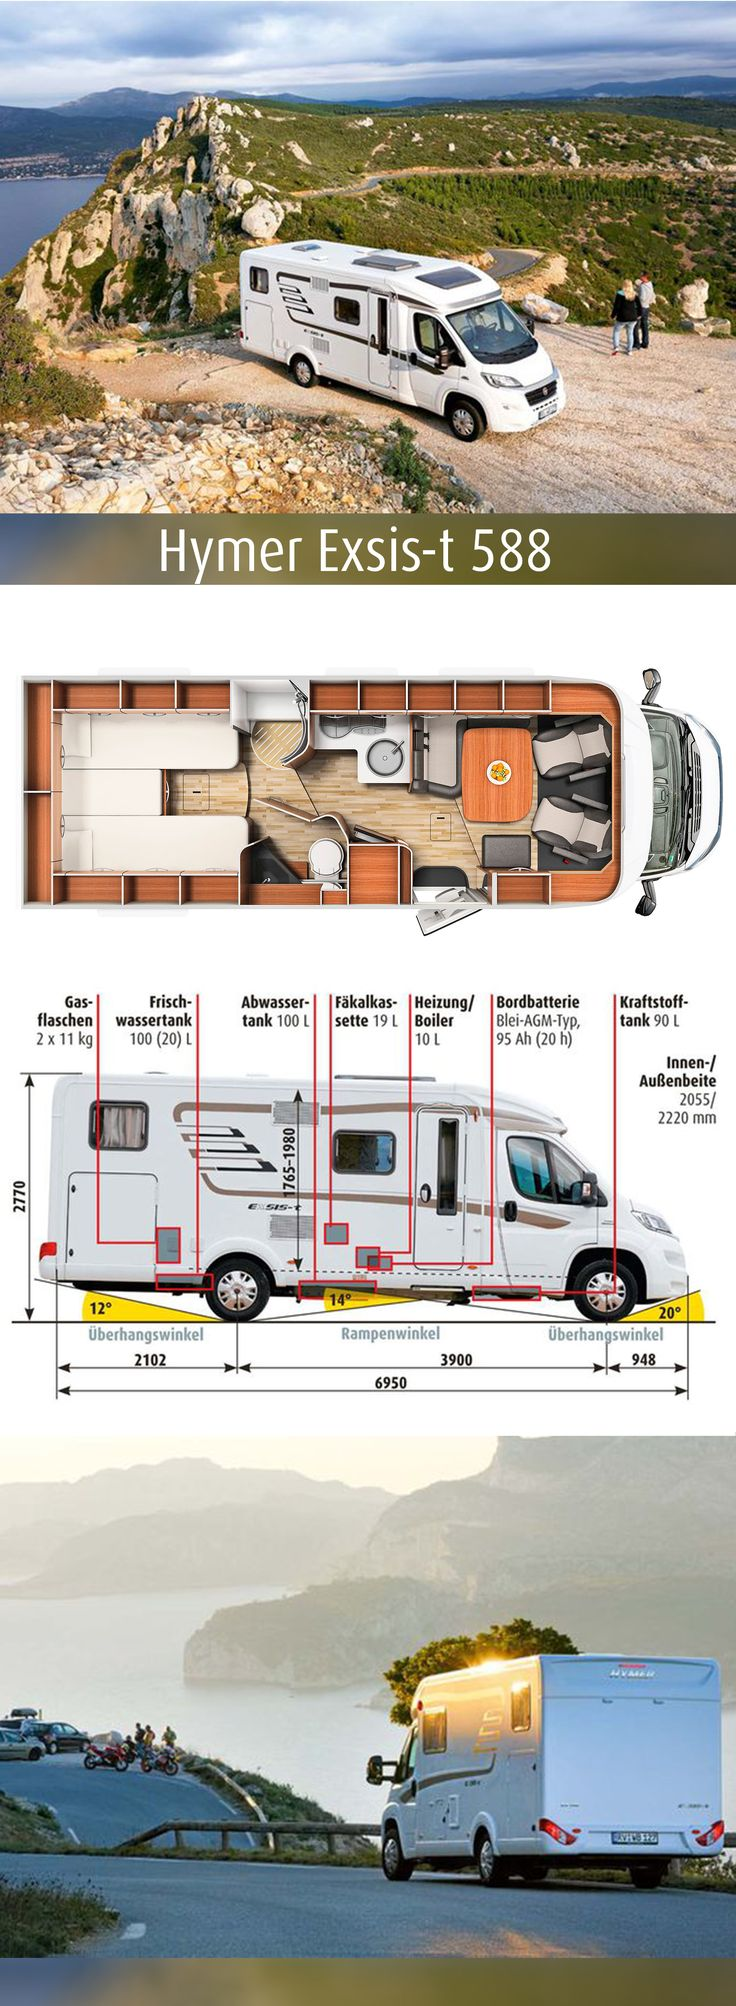 Hymer Exis-t 588